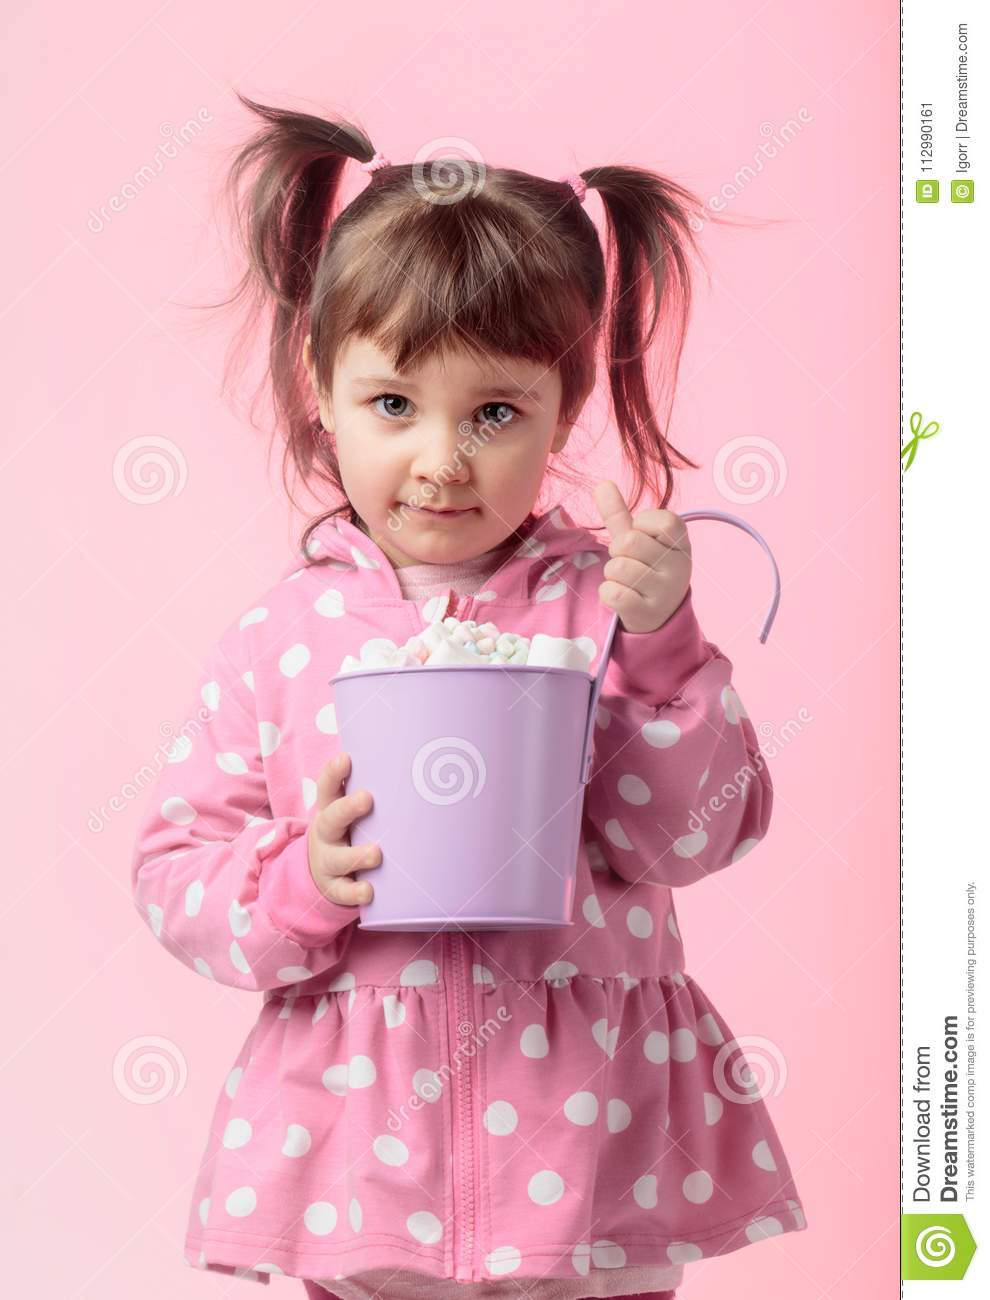 Cute little girl holding small violet bucket of marshmallow.